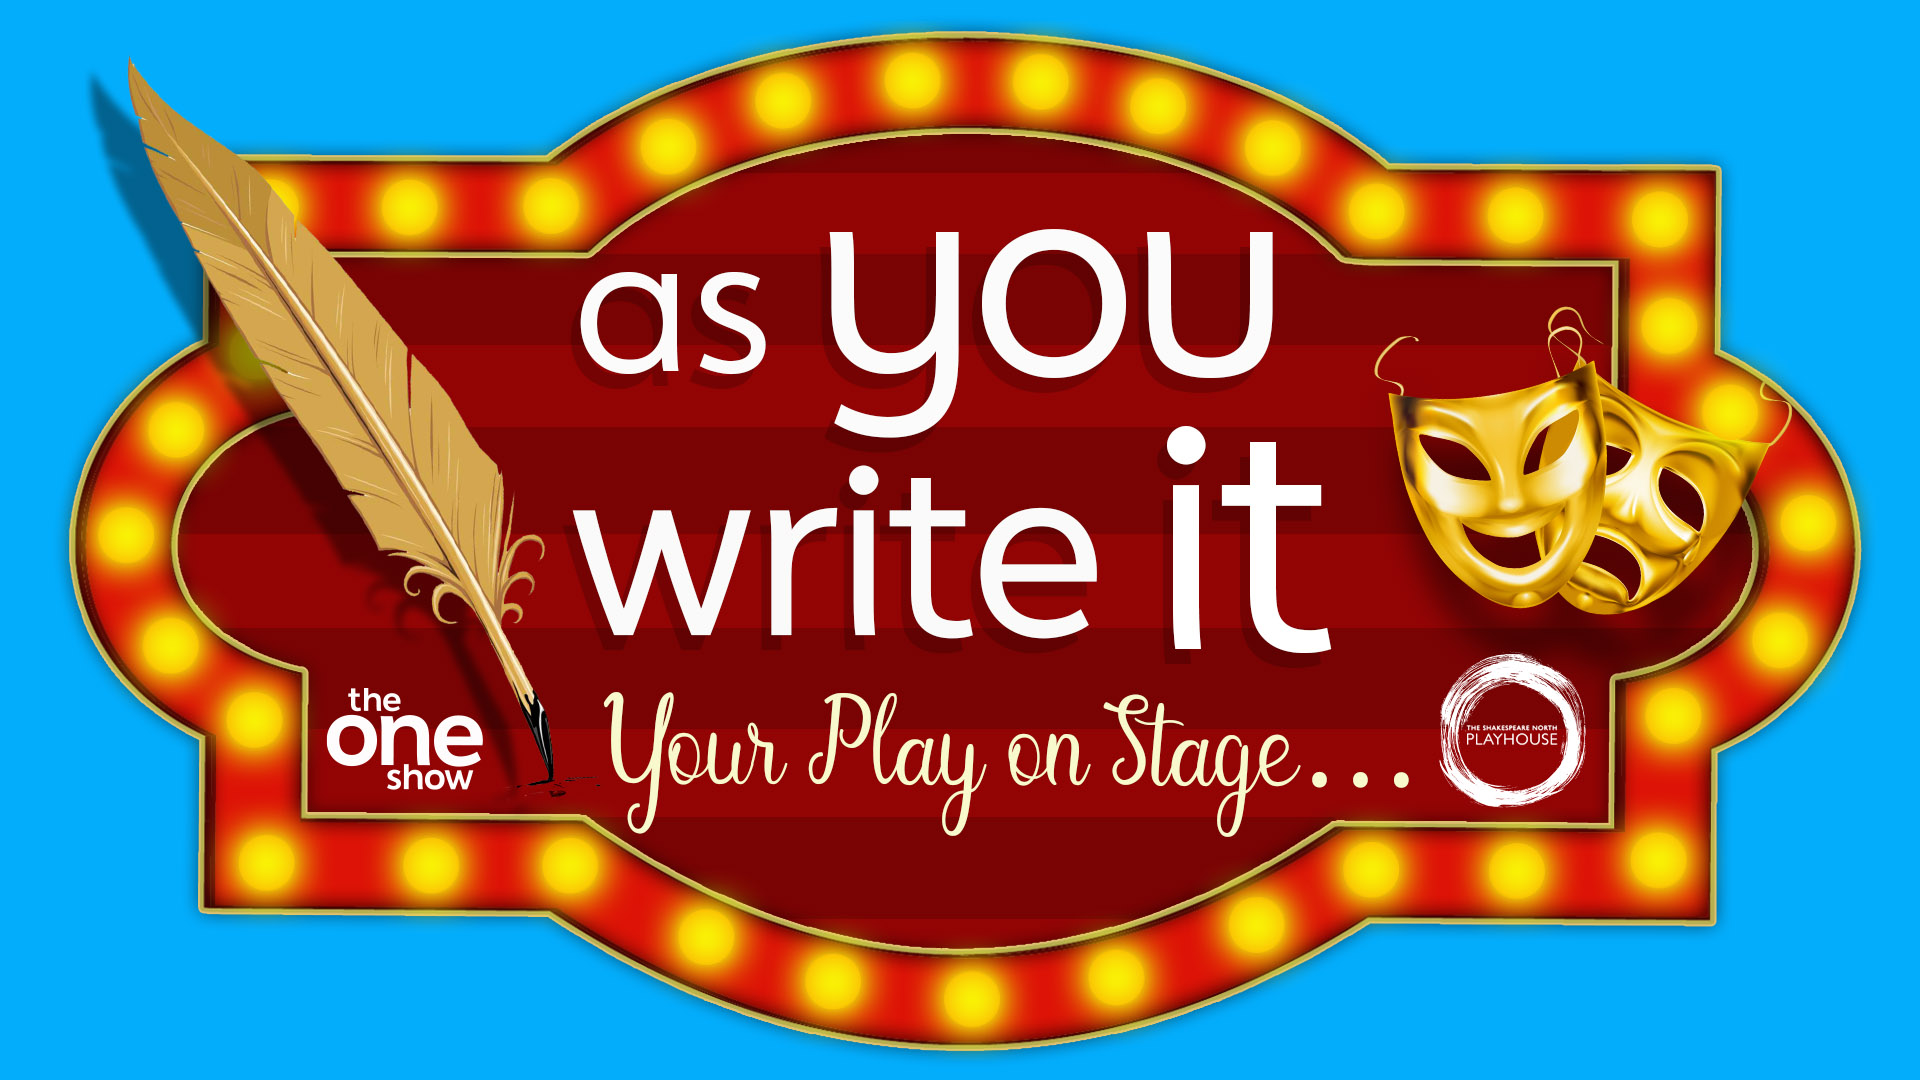 Your play on stage logo